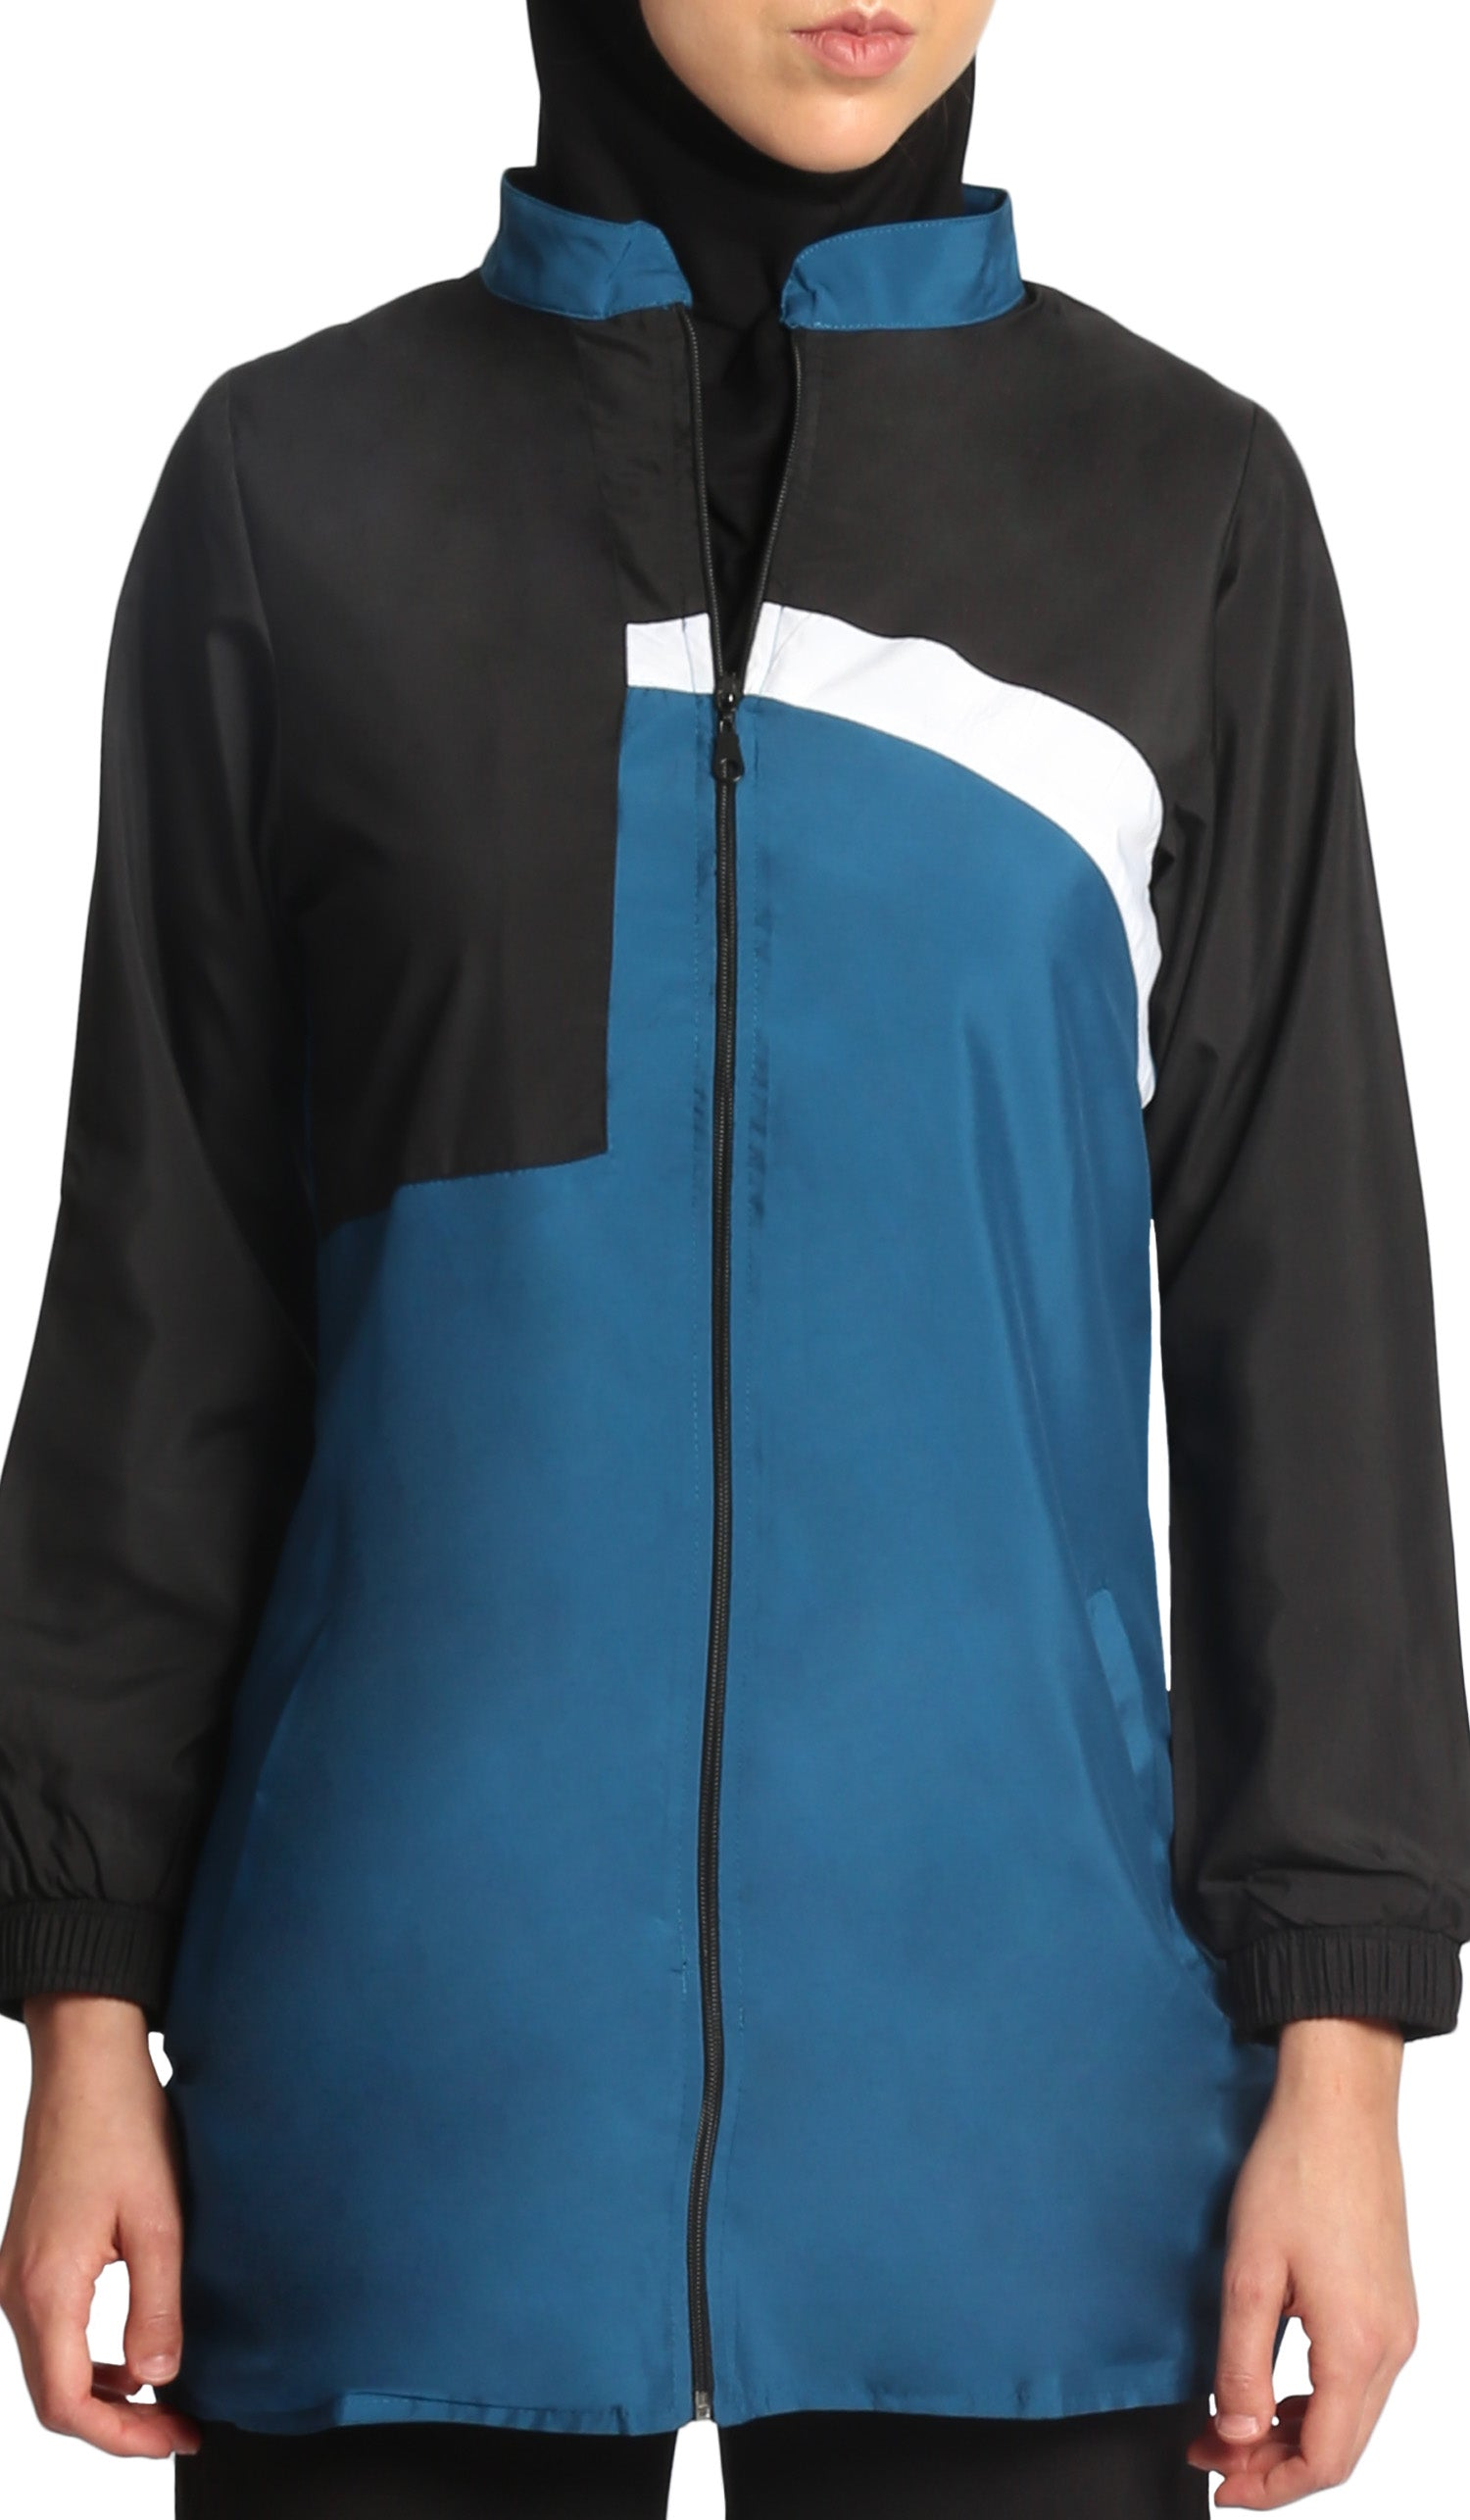 Elian Long Modest Sport Jacket - Blue/Black